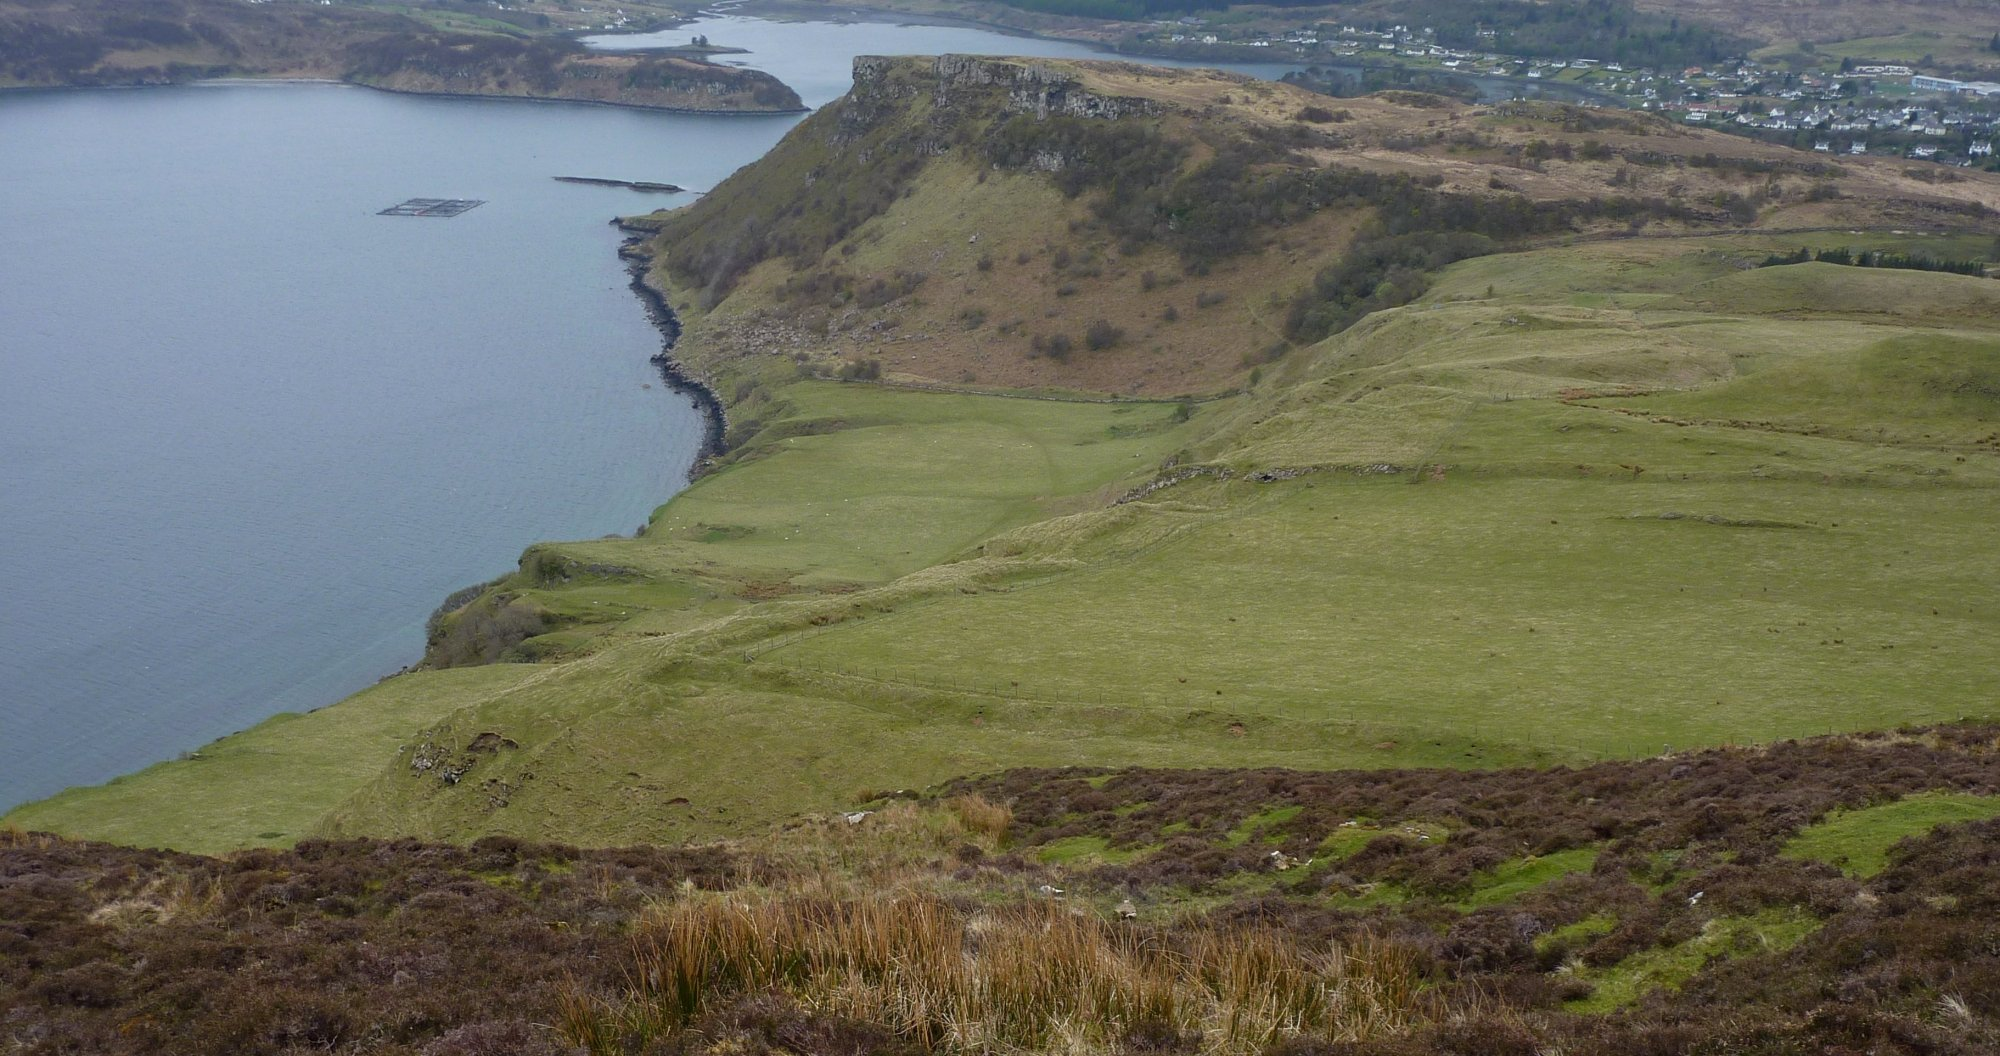 The Bile pastures of Portree, a long way below and I don't pick the best route down either